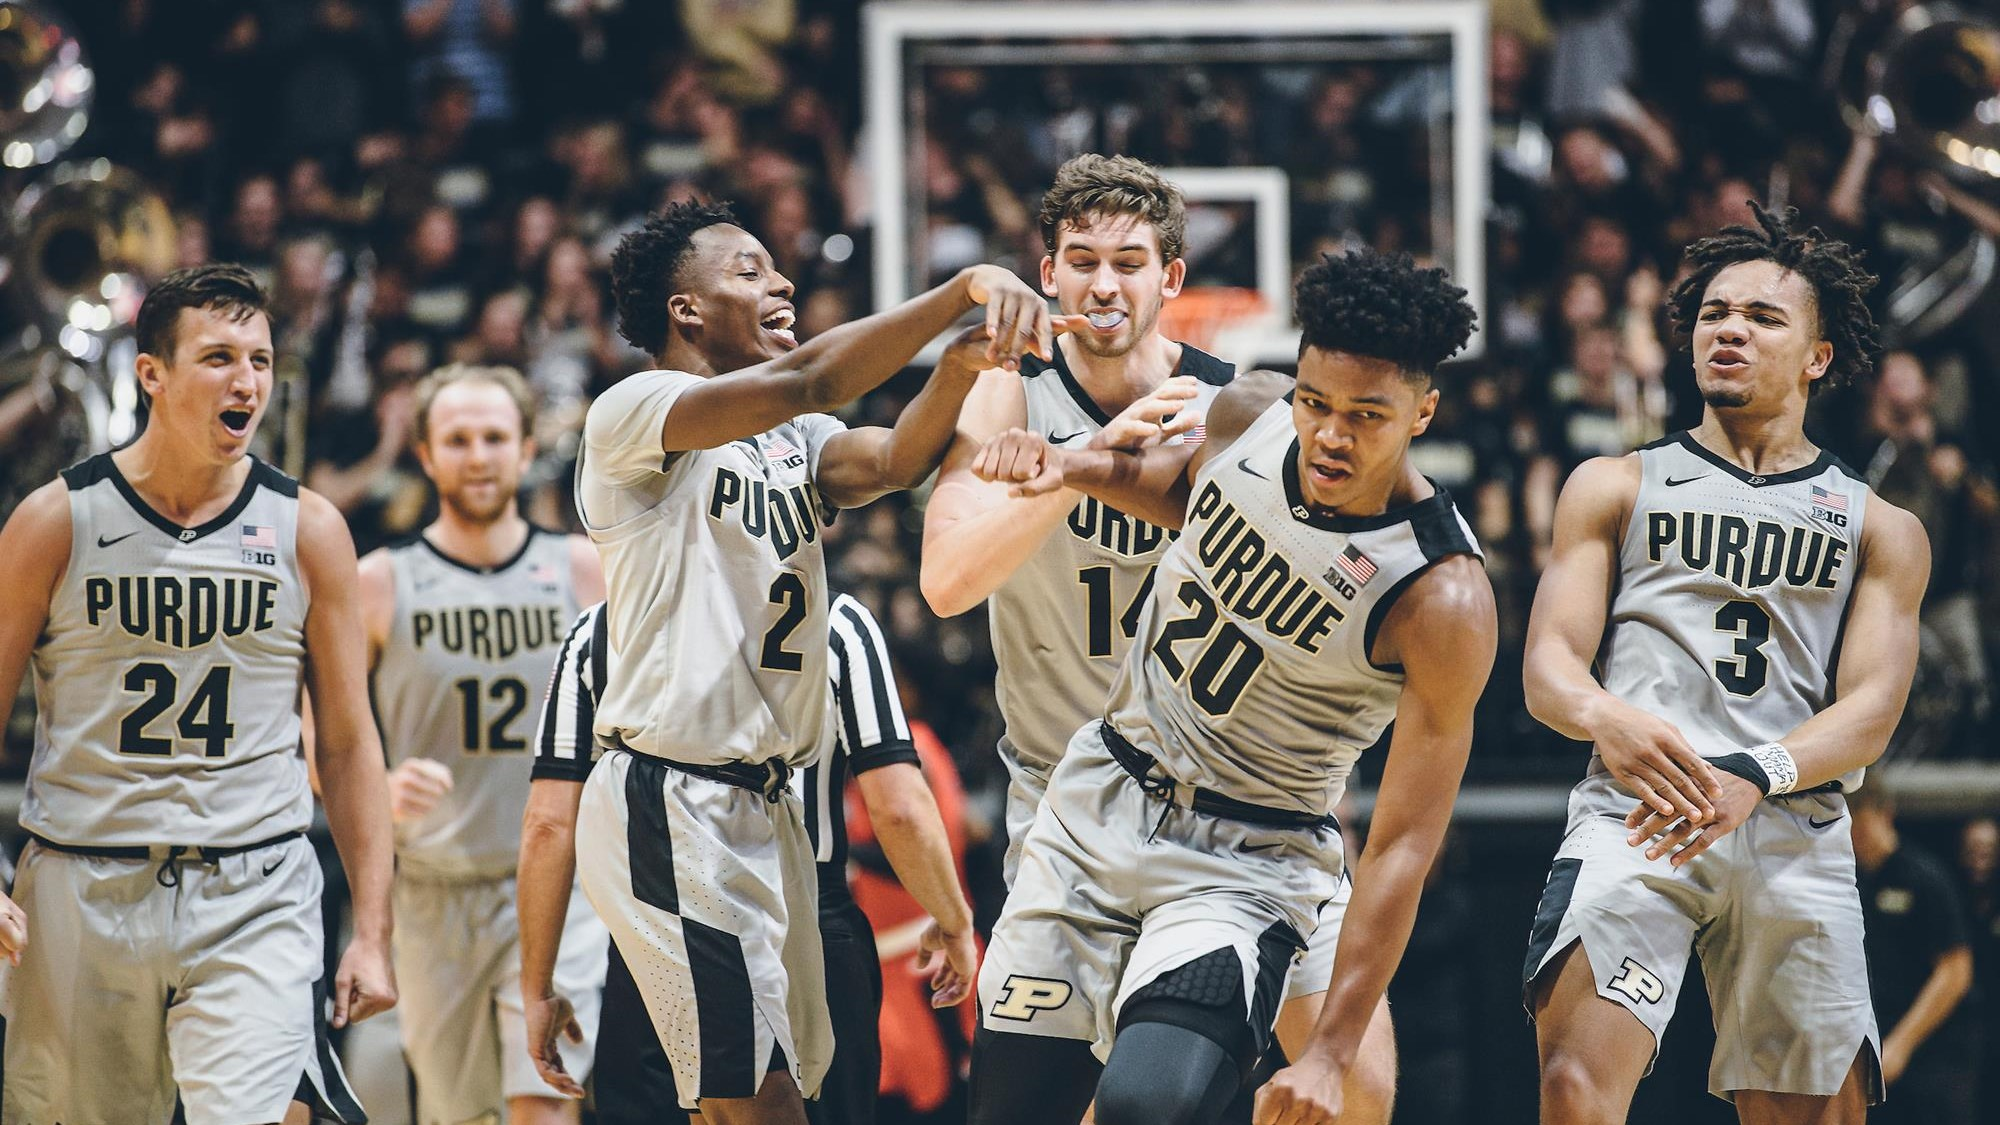 098cc0cb7d9 Purdue Basketball Season Wrap Up